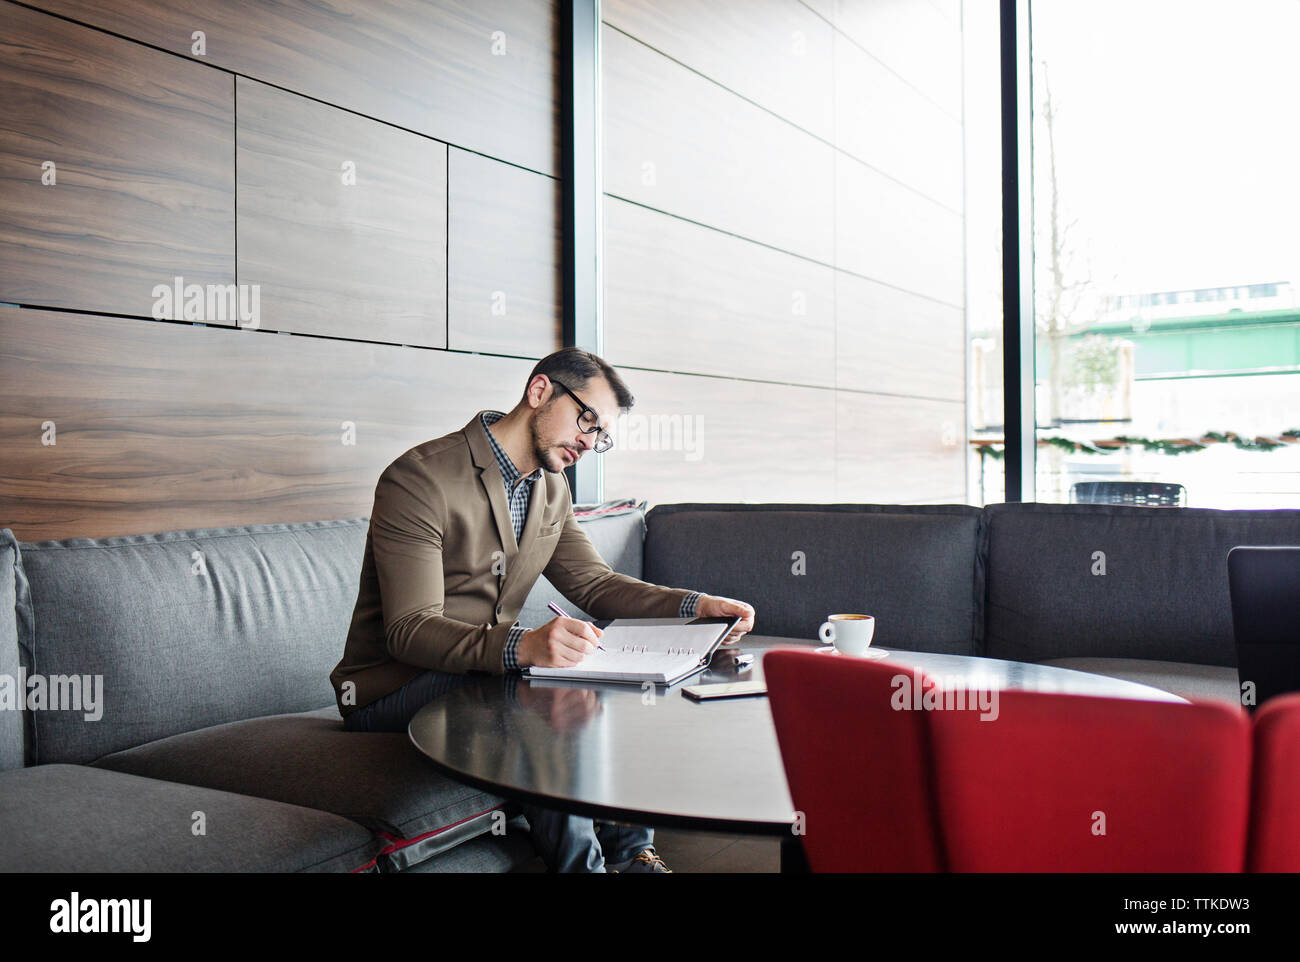 Businessman writing in diary at table in restaurant - Stock Image